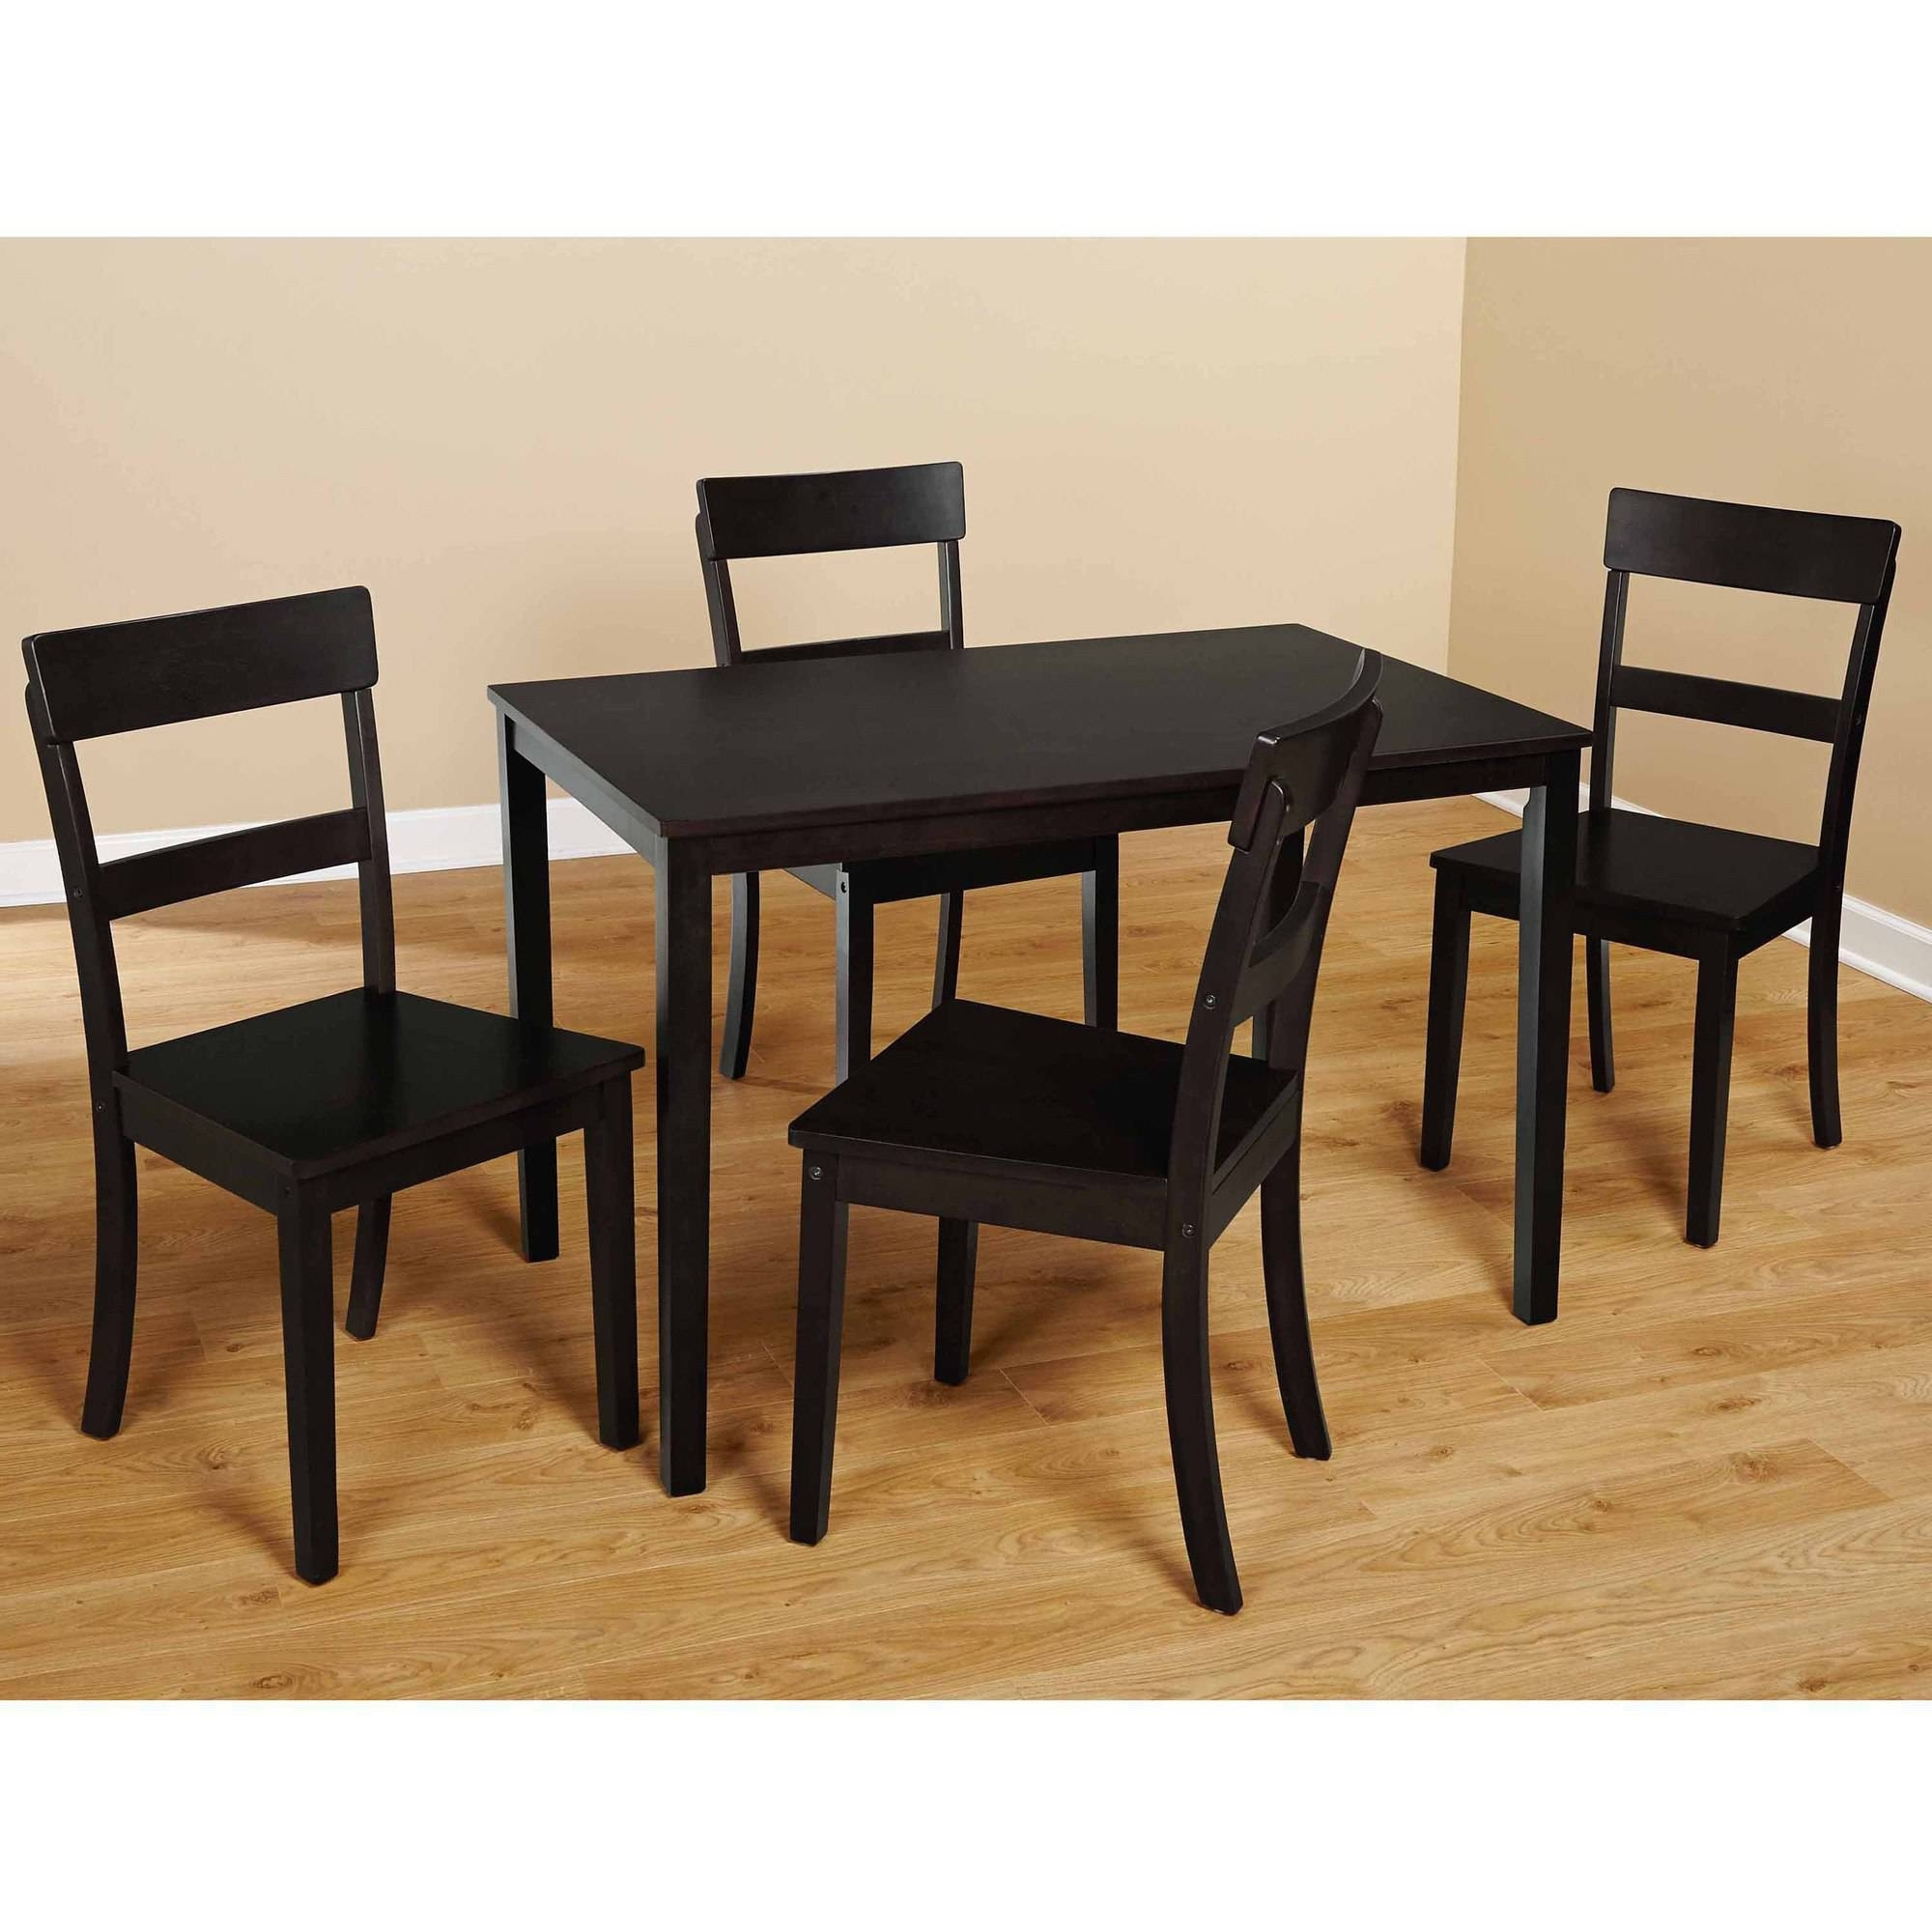 Fashionable Delfina 7 Piece Dining Sets With Regard To Dining Sets Under $200 – Walmart (View 13 of 25)